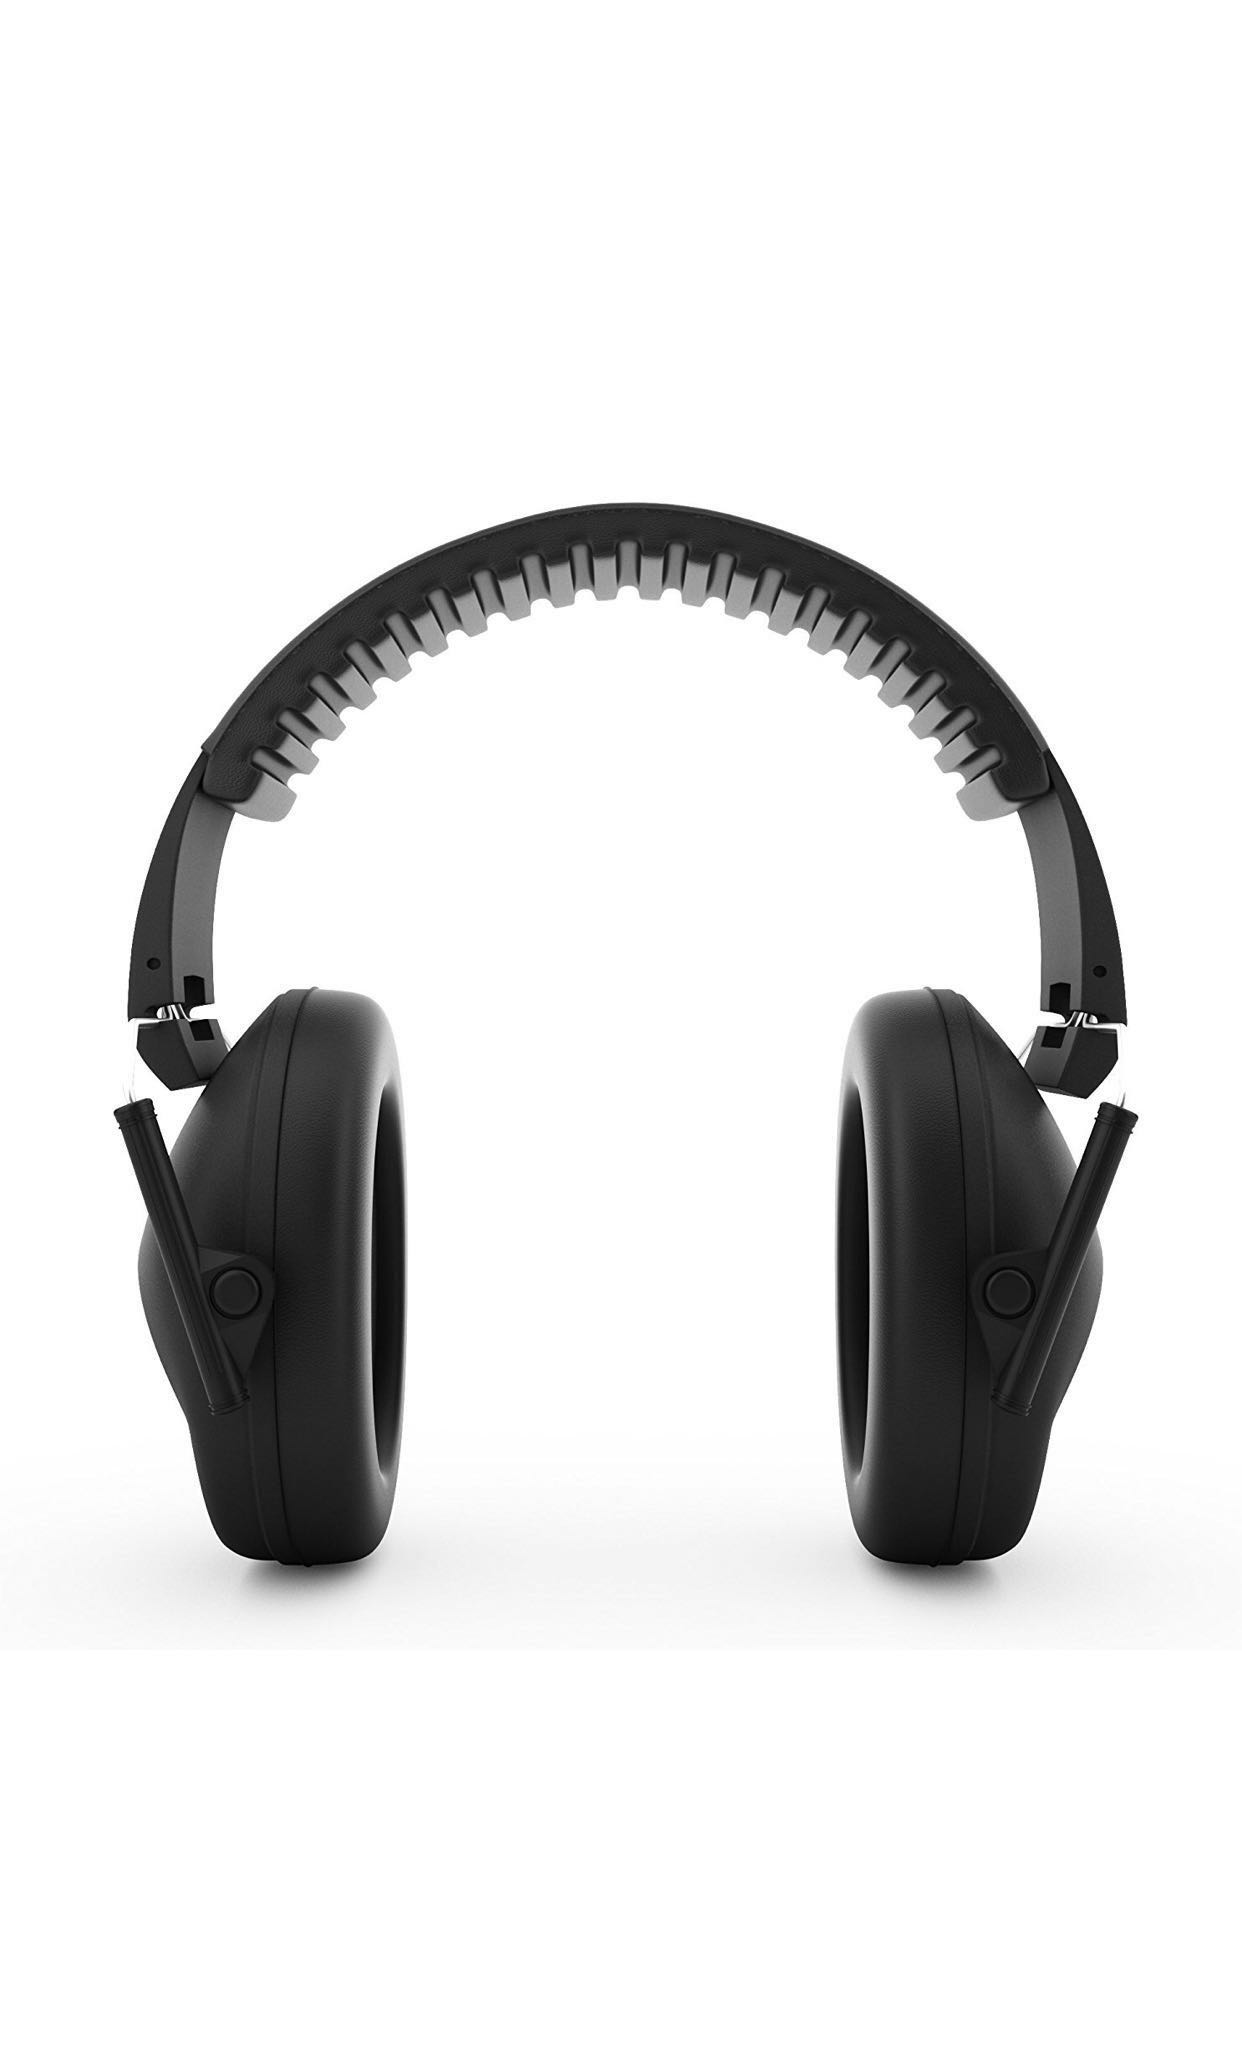 Earmuffs hearing protection with low profile passive folding design 26dB NRR and